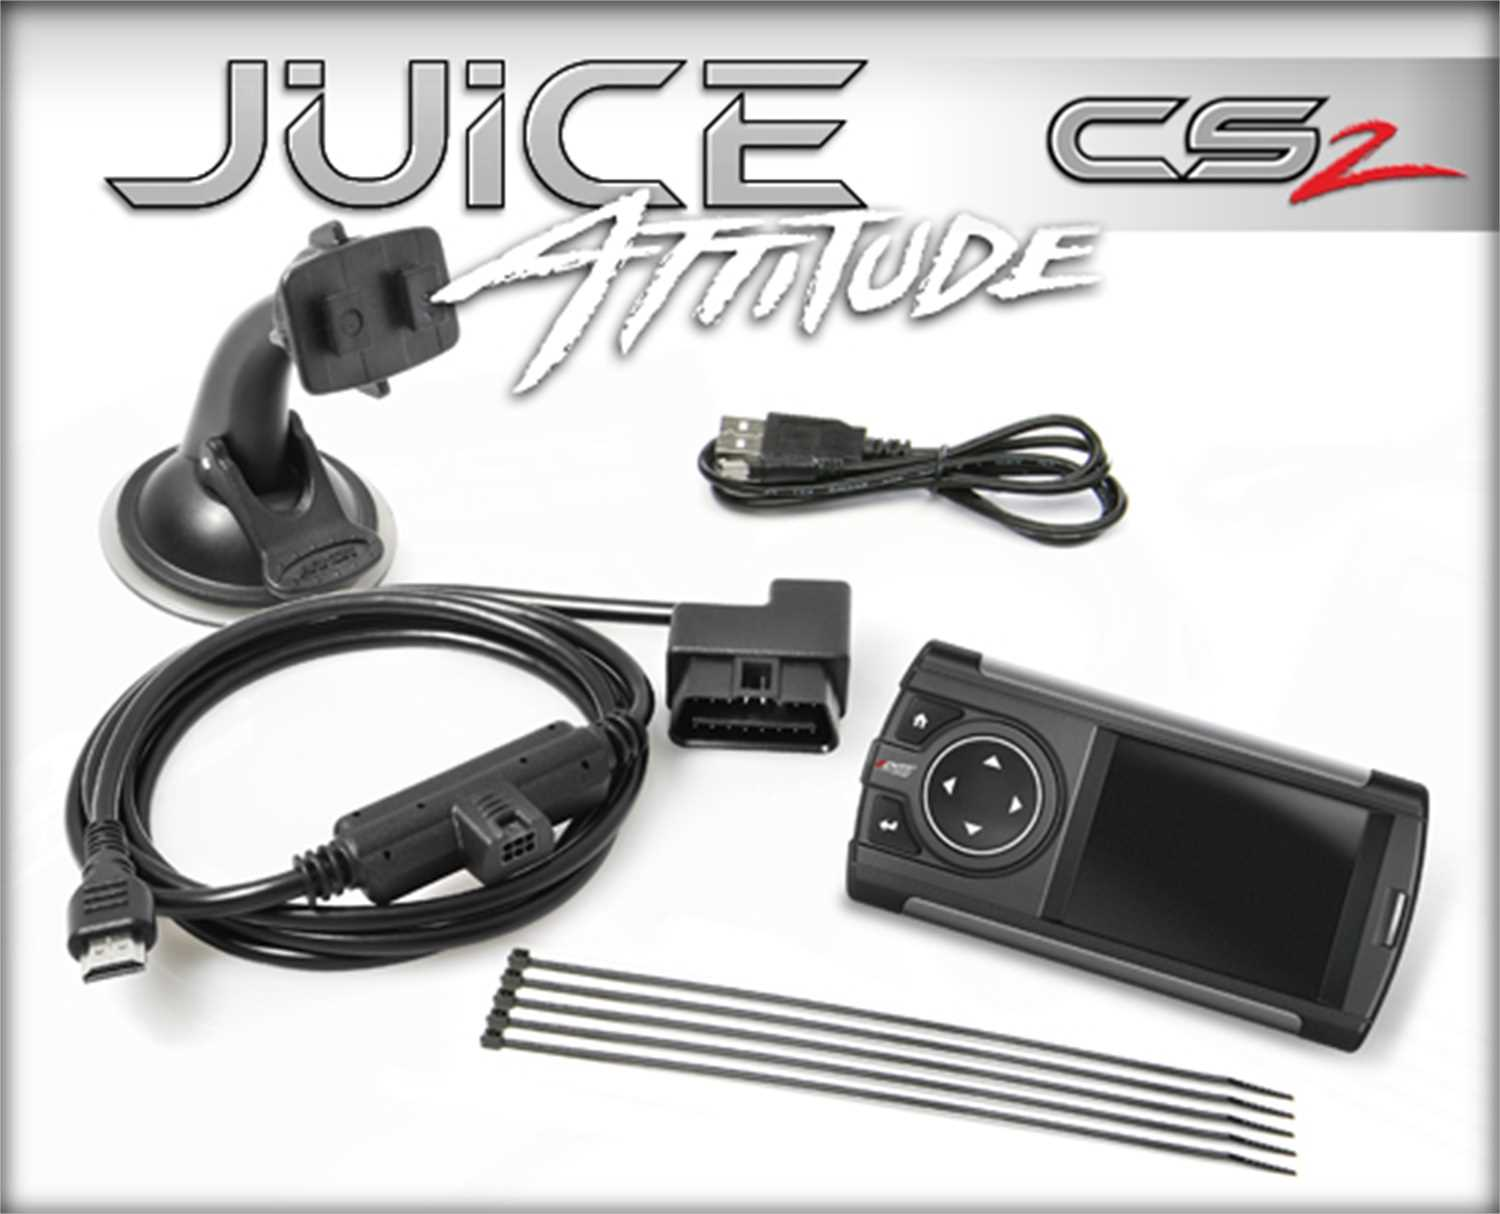 21401 Edge Products Juice w/Attitude CS2 Programmer